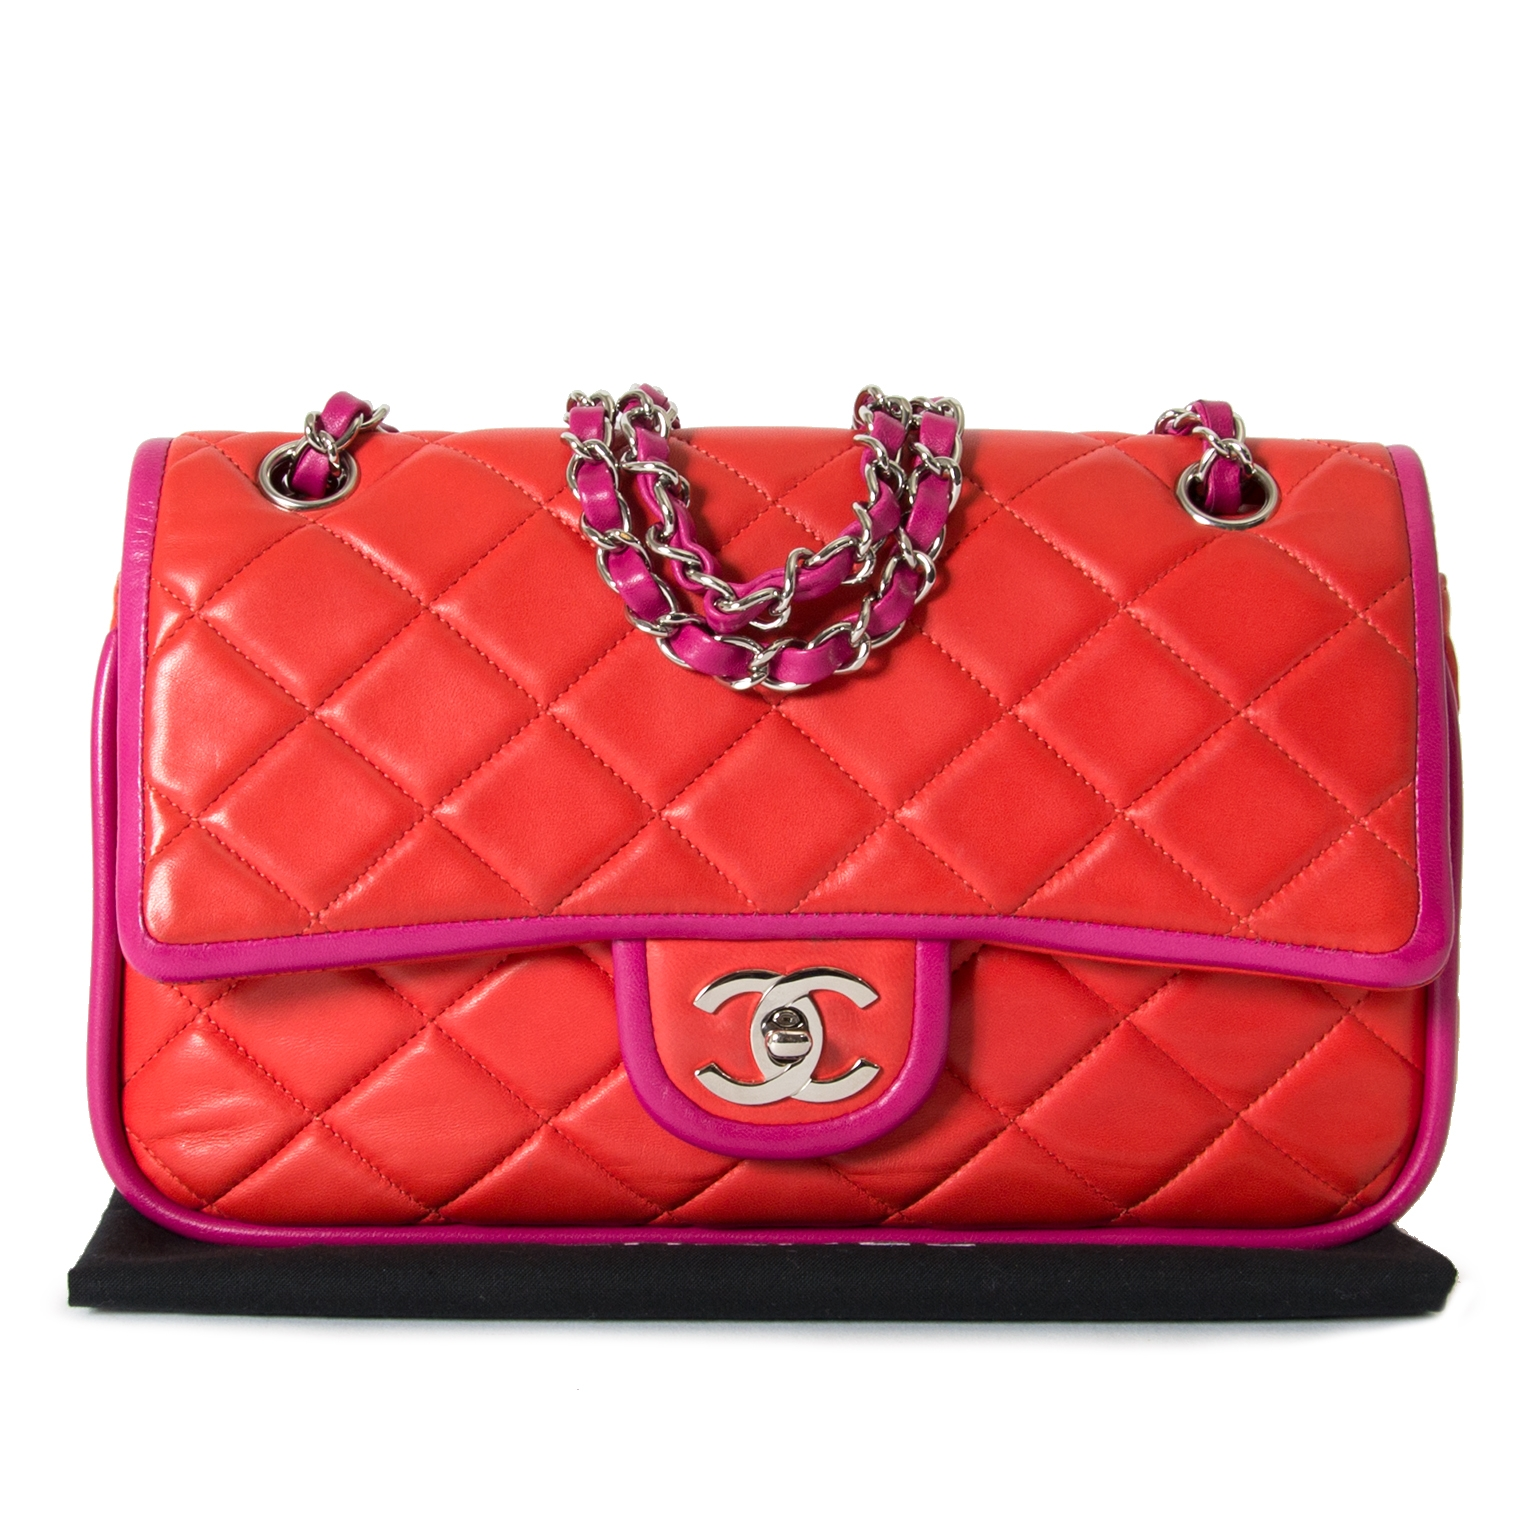 39ef40d80f42 ... Chanel Bicolor Classic Flap Bag Medium now for sale at labellov vintage  fashion webshop belgium